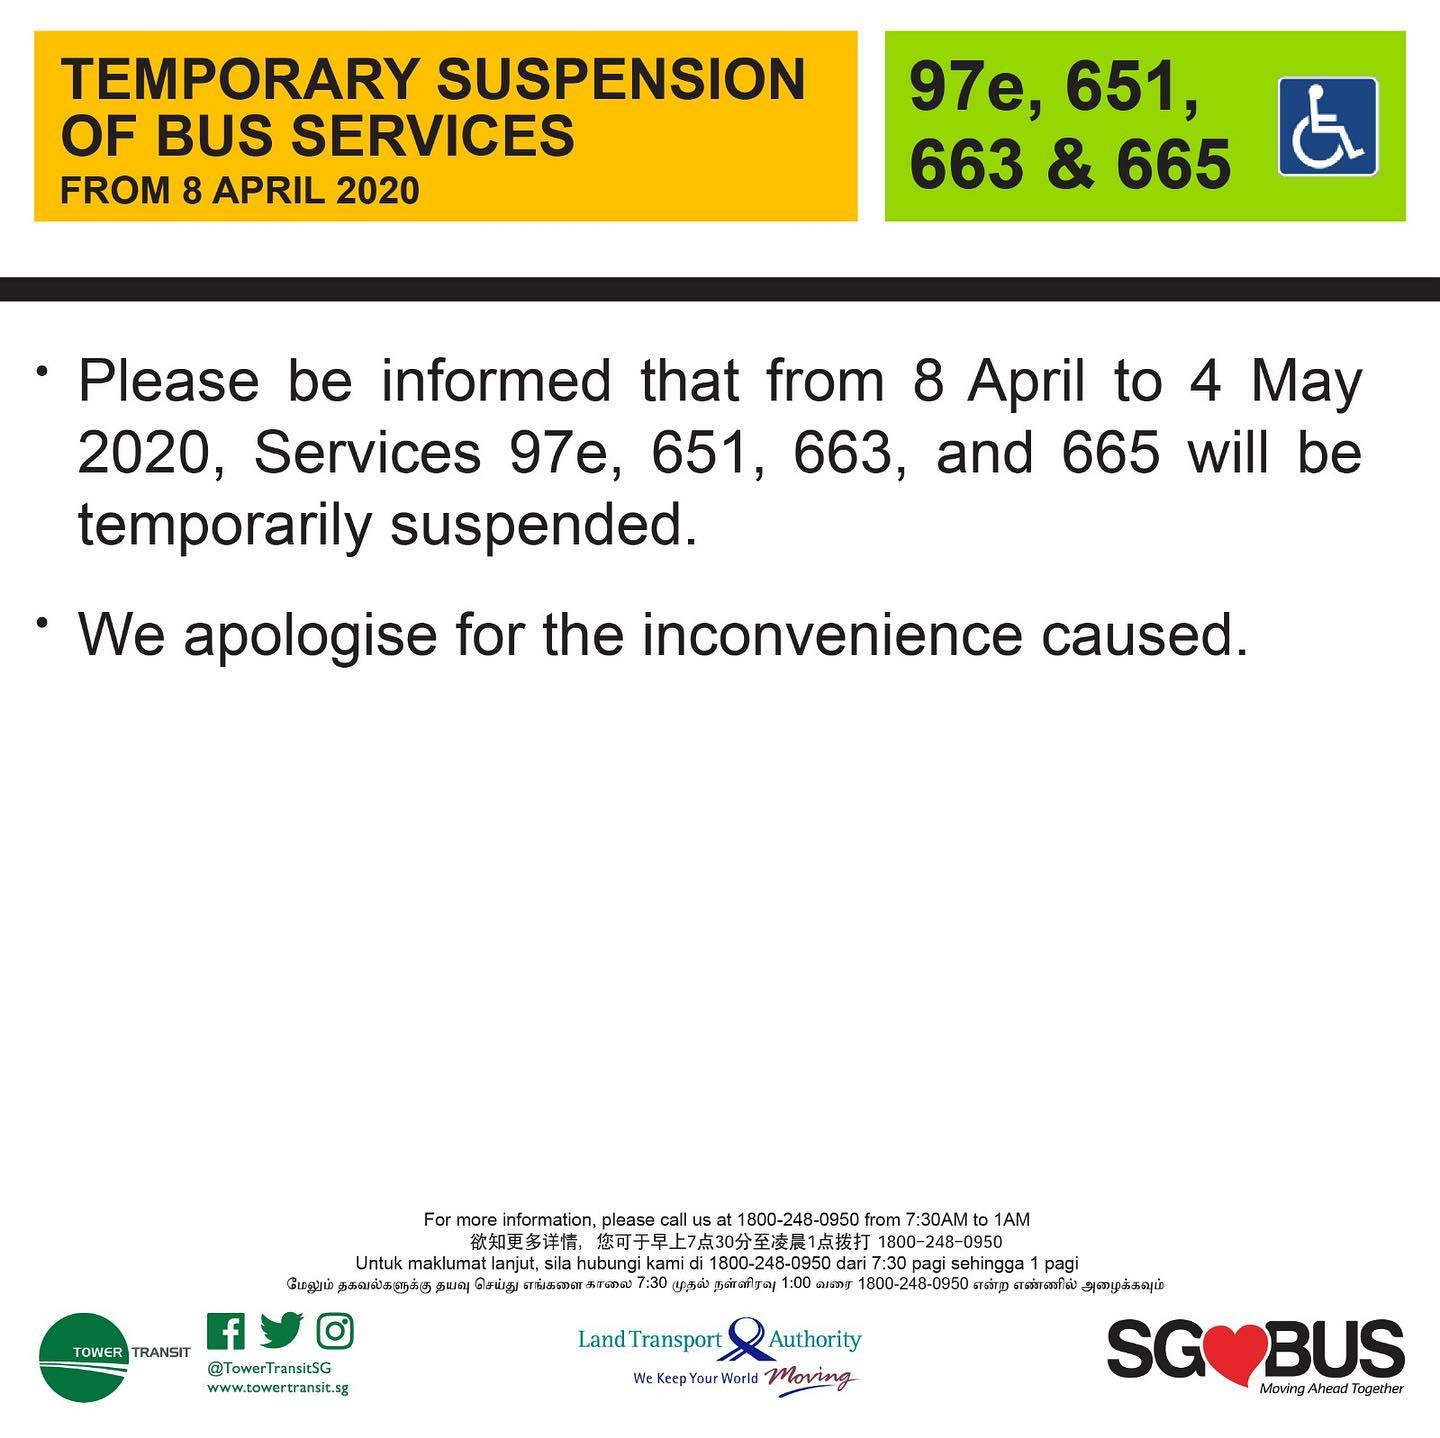 Official announcement from Tower Transit Singapore on temporary bus service suspension during COVID-19 Circuit Breaker measures.